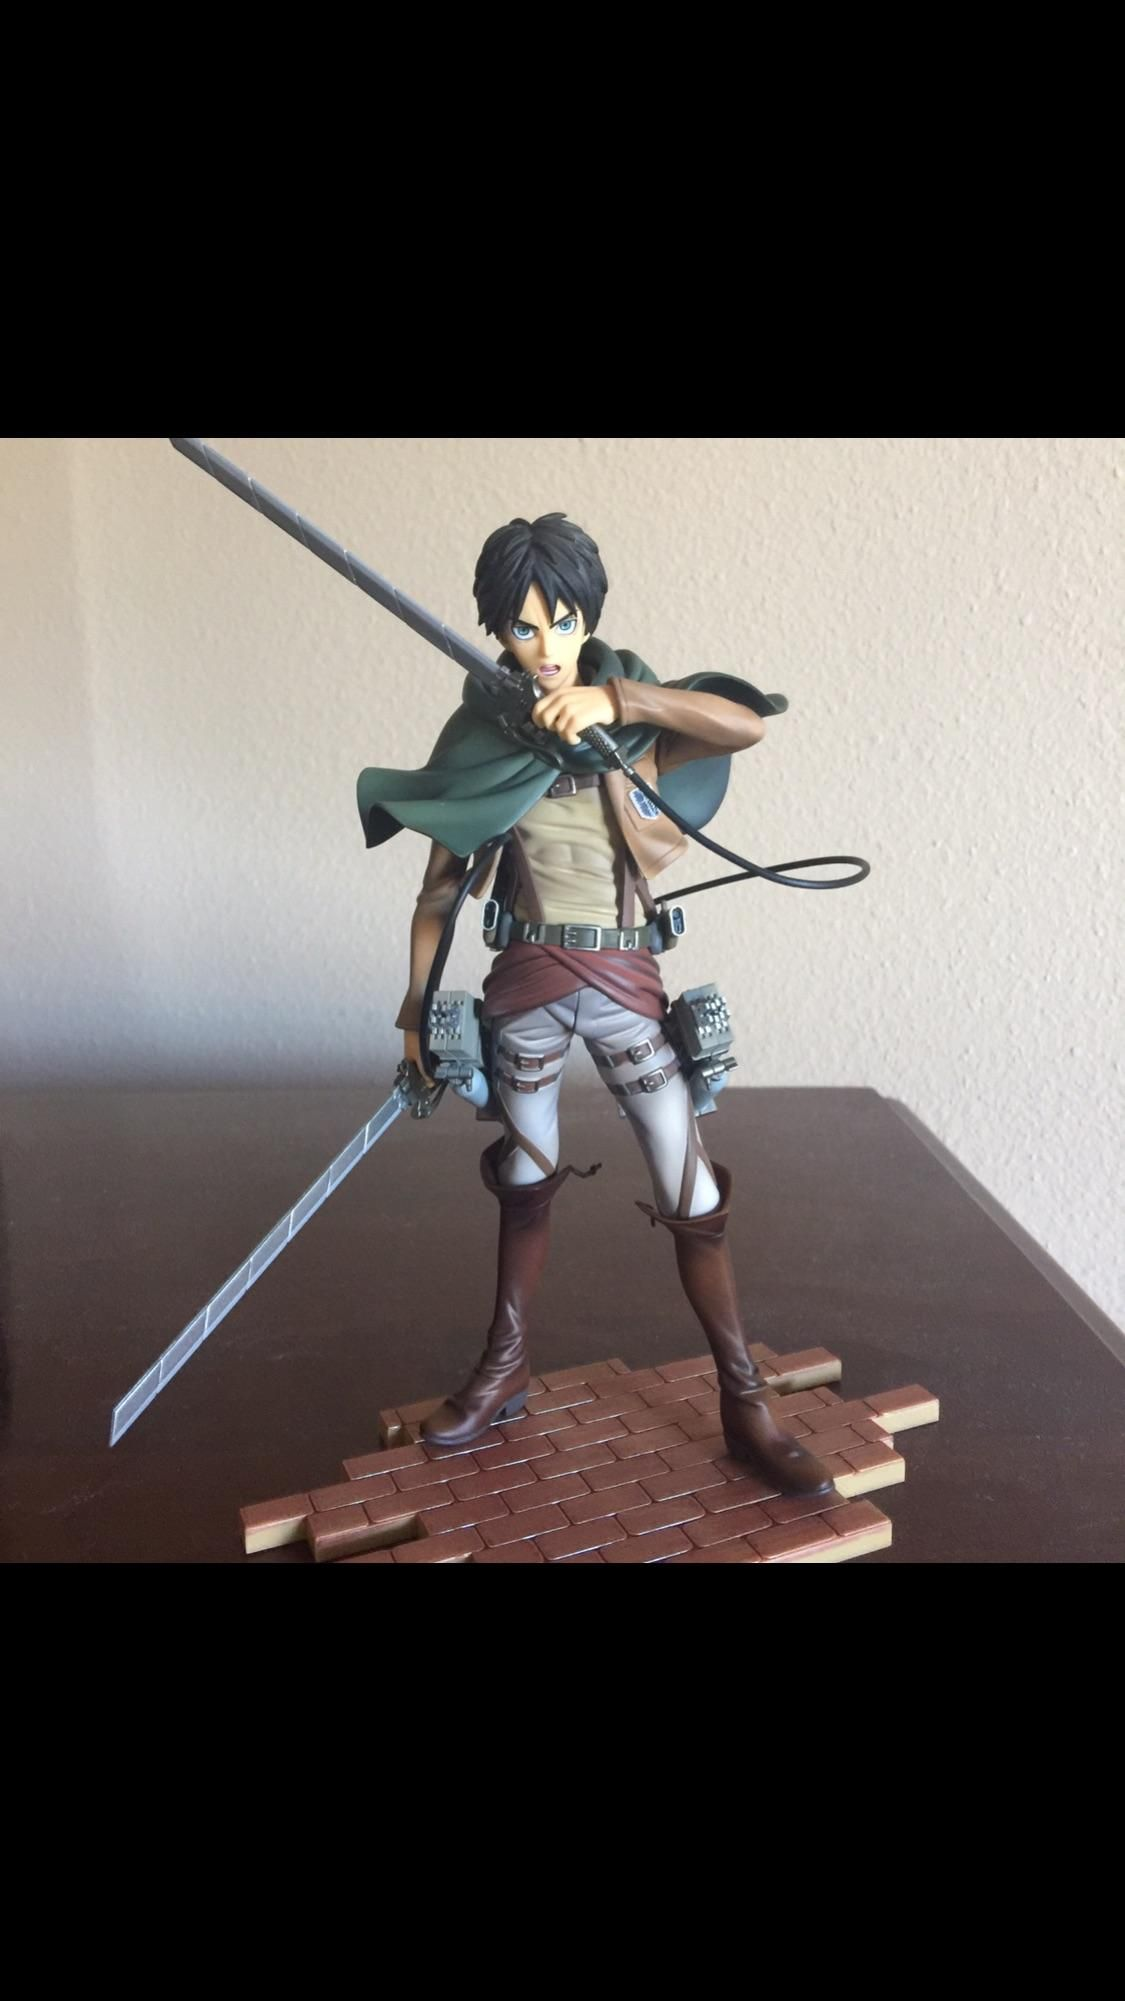 Eren finally came in today Love how detailed he is. - http://ift.tt/2lOUm7R